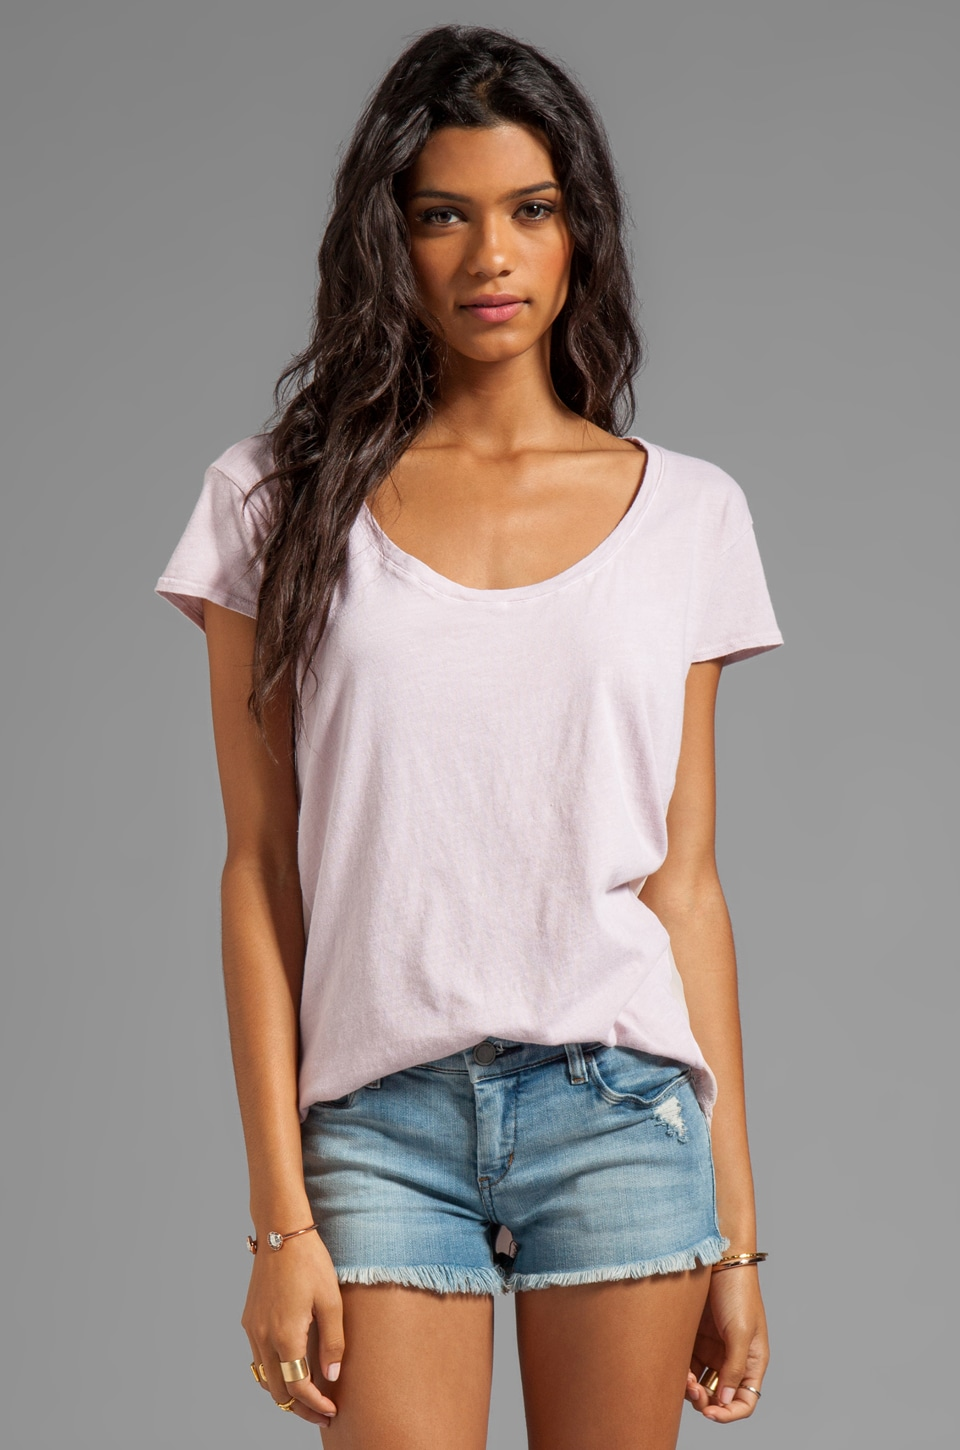 AG Adriano Goldschmied Jersey Relaxed Tee in Rose Pink